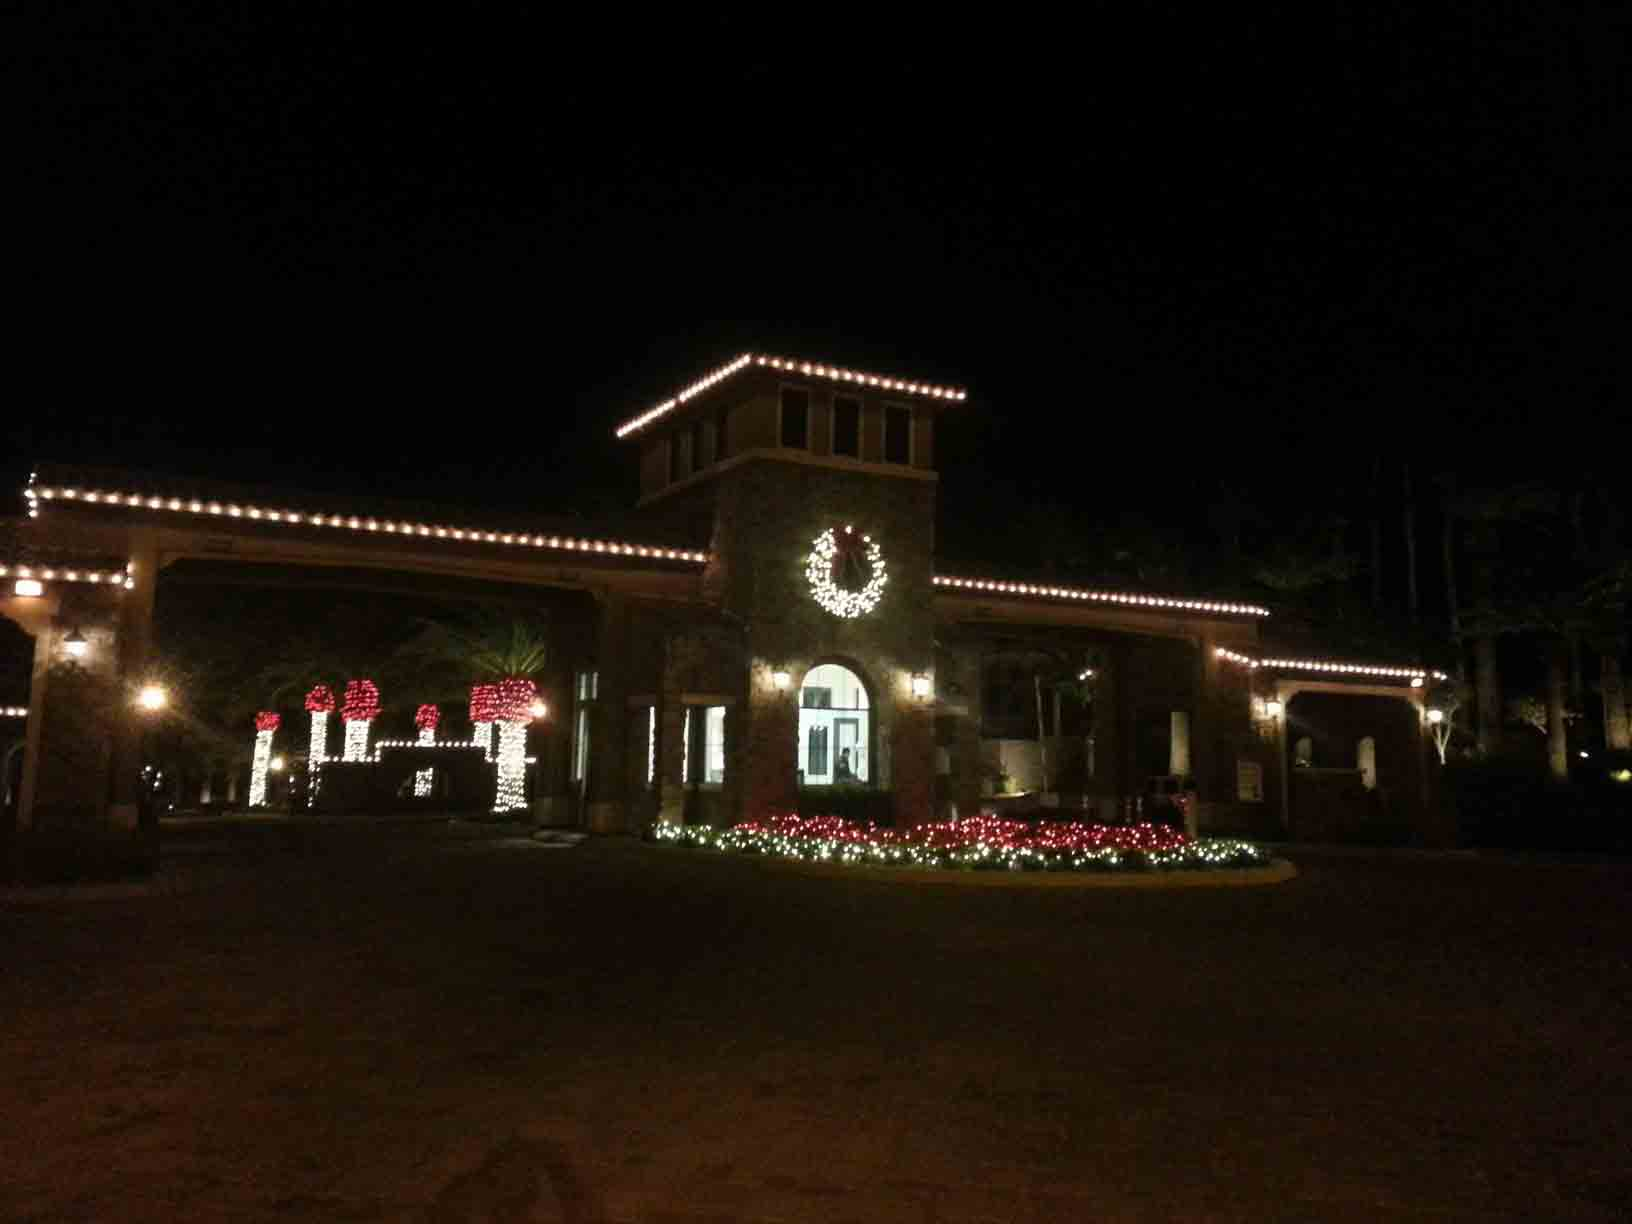 Commercial and HOA Christmas lights and decor by Holiday Decorations in Las Vegas